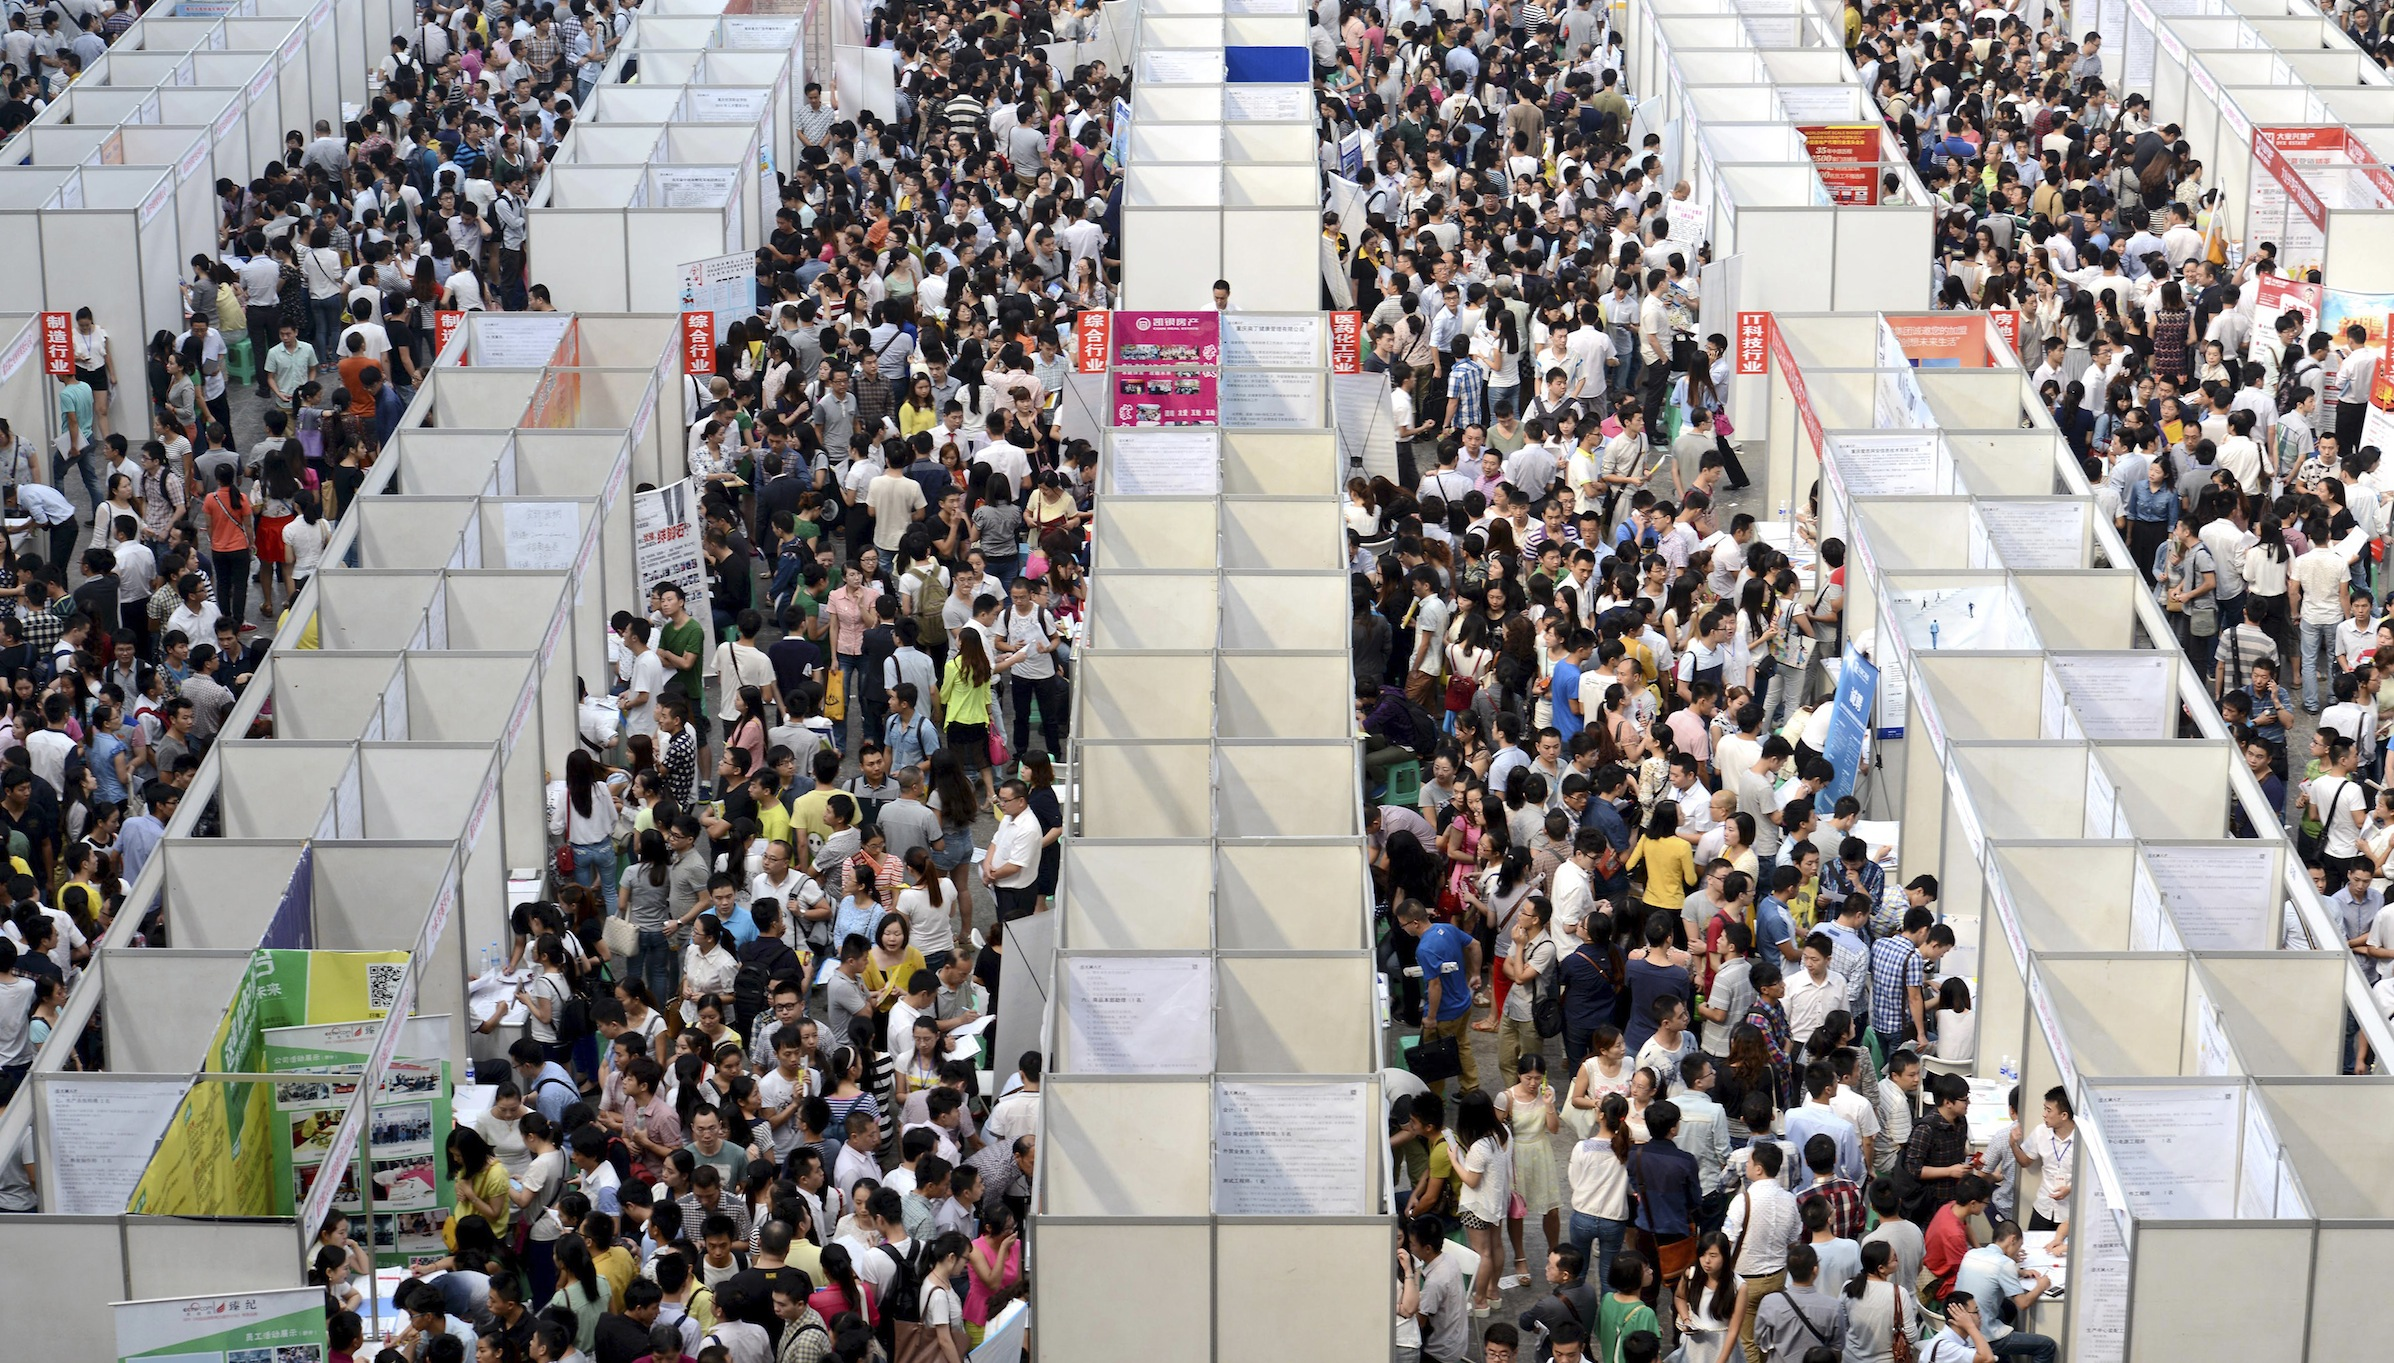 Thousands of job seekers visit booths at a job fair in Chongqing municipality, October 11, 2014. China's economy likely grew at its weakest pace in more than five years in the third quarter as a property downturn weighed on demand, a Reuters poll showed, raising the chances of more aggressive policy steps that may include cutting interest rates. The prospects of weaker growth may raise the chances of more aggressive policy steps such as cutting interest rates or reserve requirements across the board, but the government may not rush into action as the job market still appears to be holding up, analysts say. REUTERS/Stringer (CHINA - Tags: BUSINESS EMPLOYMENT POLITICS TPX IMAGES OF THE DAY) CHINA OUT. NO COMMERCIAL OR EDITORIAL SALES IN CHINA - RTR49RH7